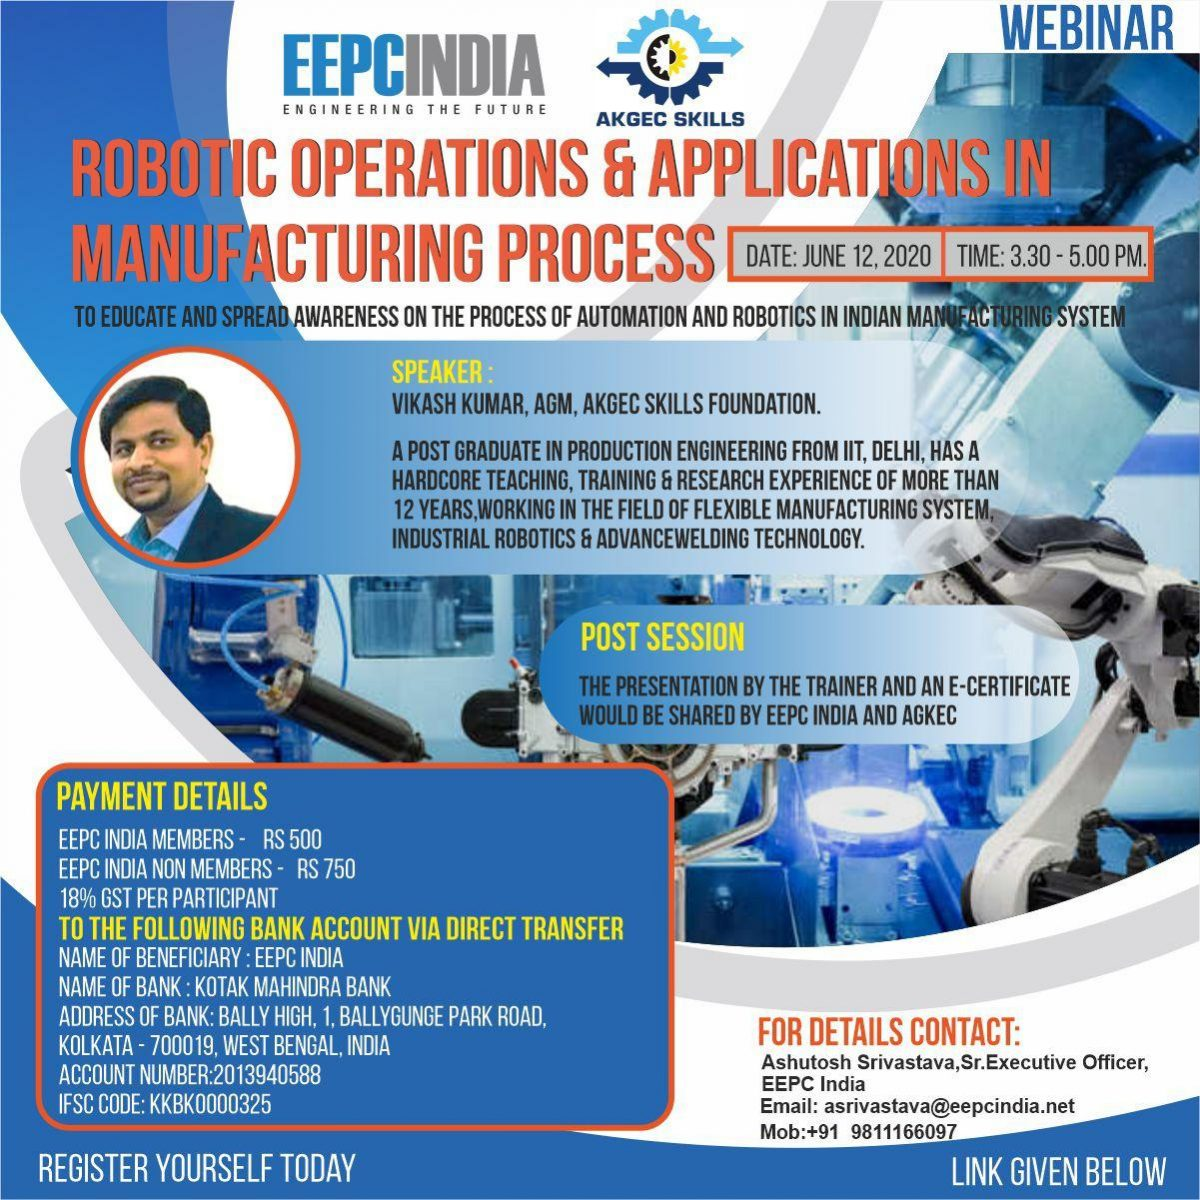 Webinar on Robotic Operations & Applications in Manufacturing Process